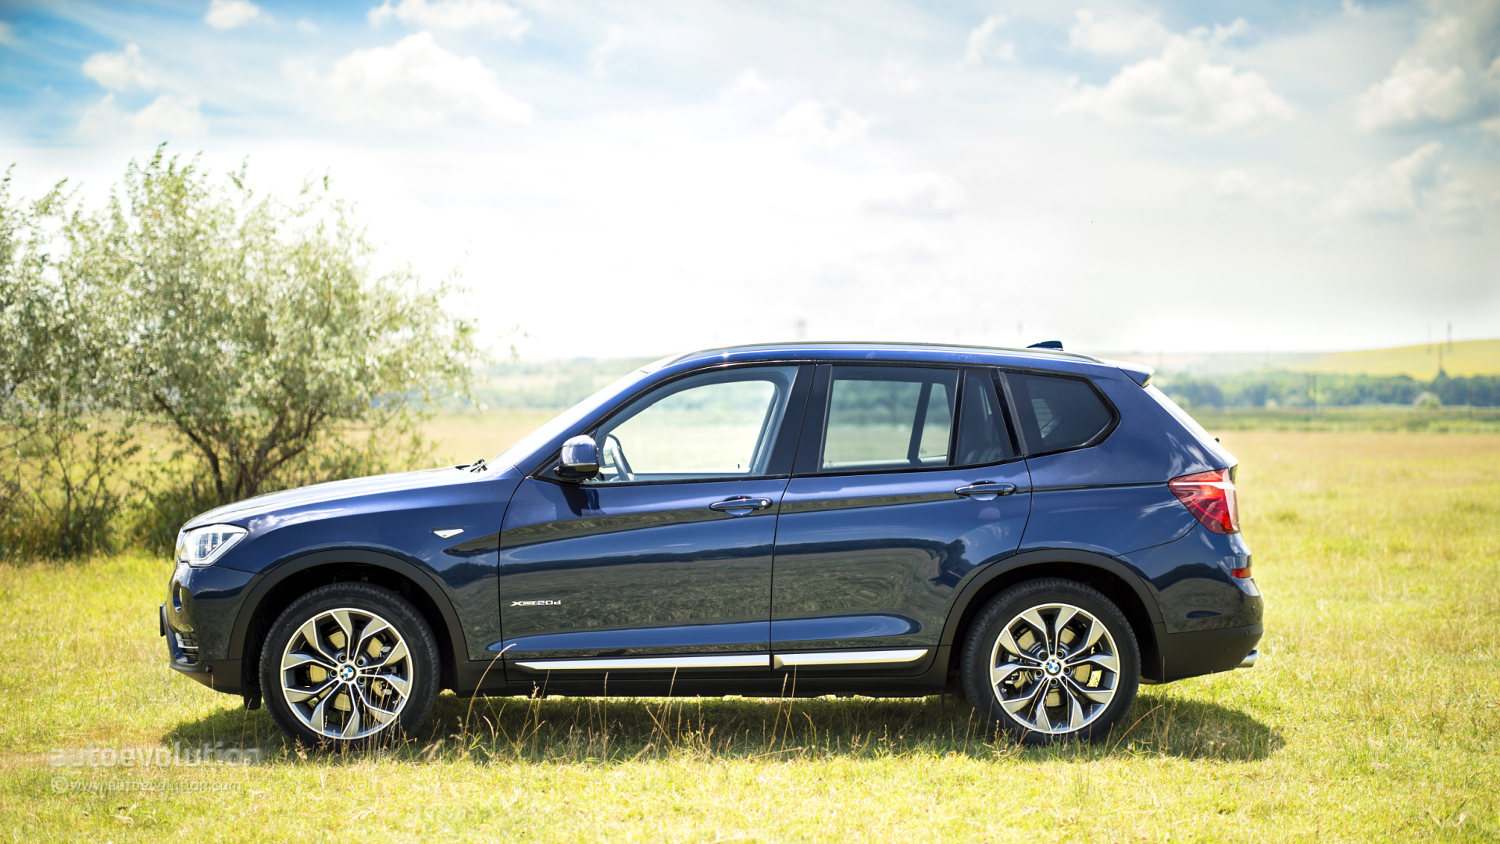 2014 Bmw X5 Xdrive 35i M Performance Exterior And Upcomingcarshq Com